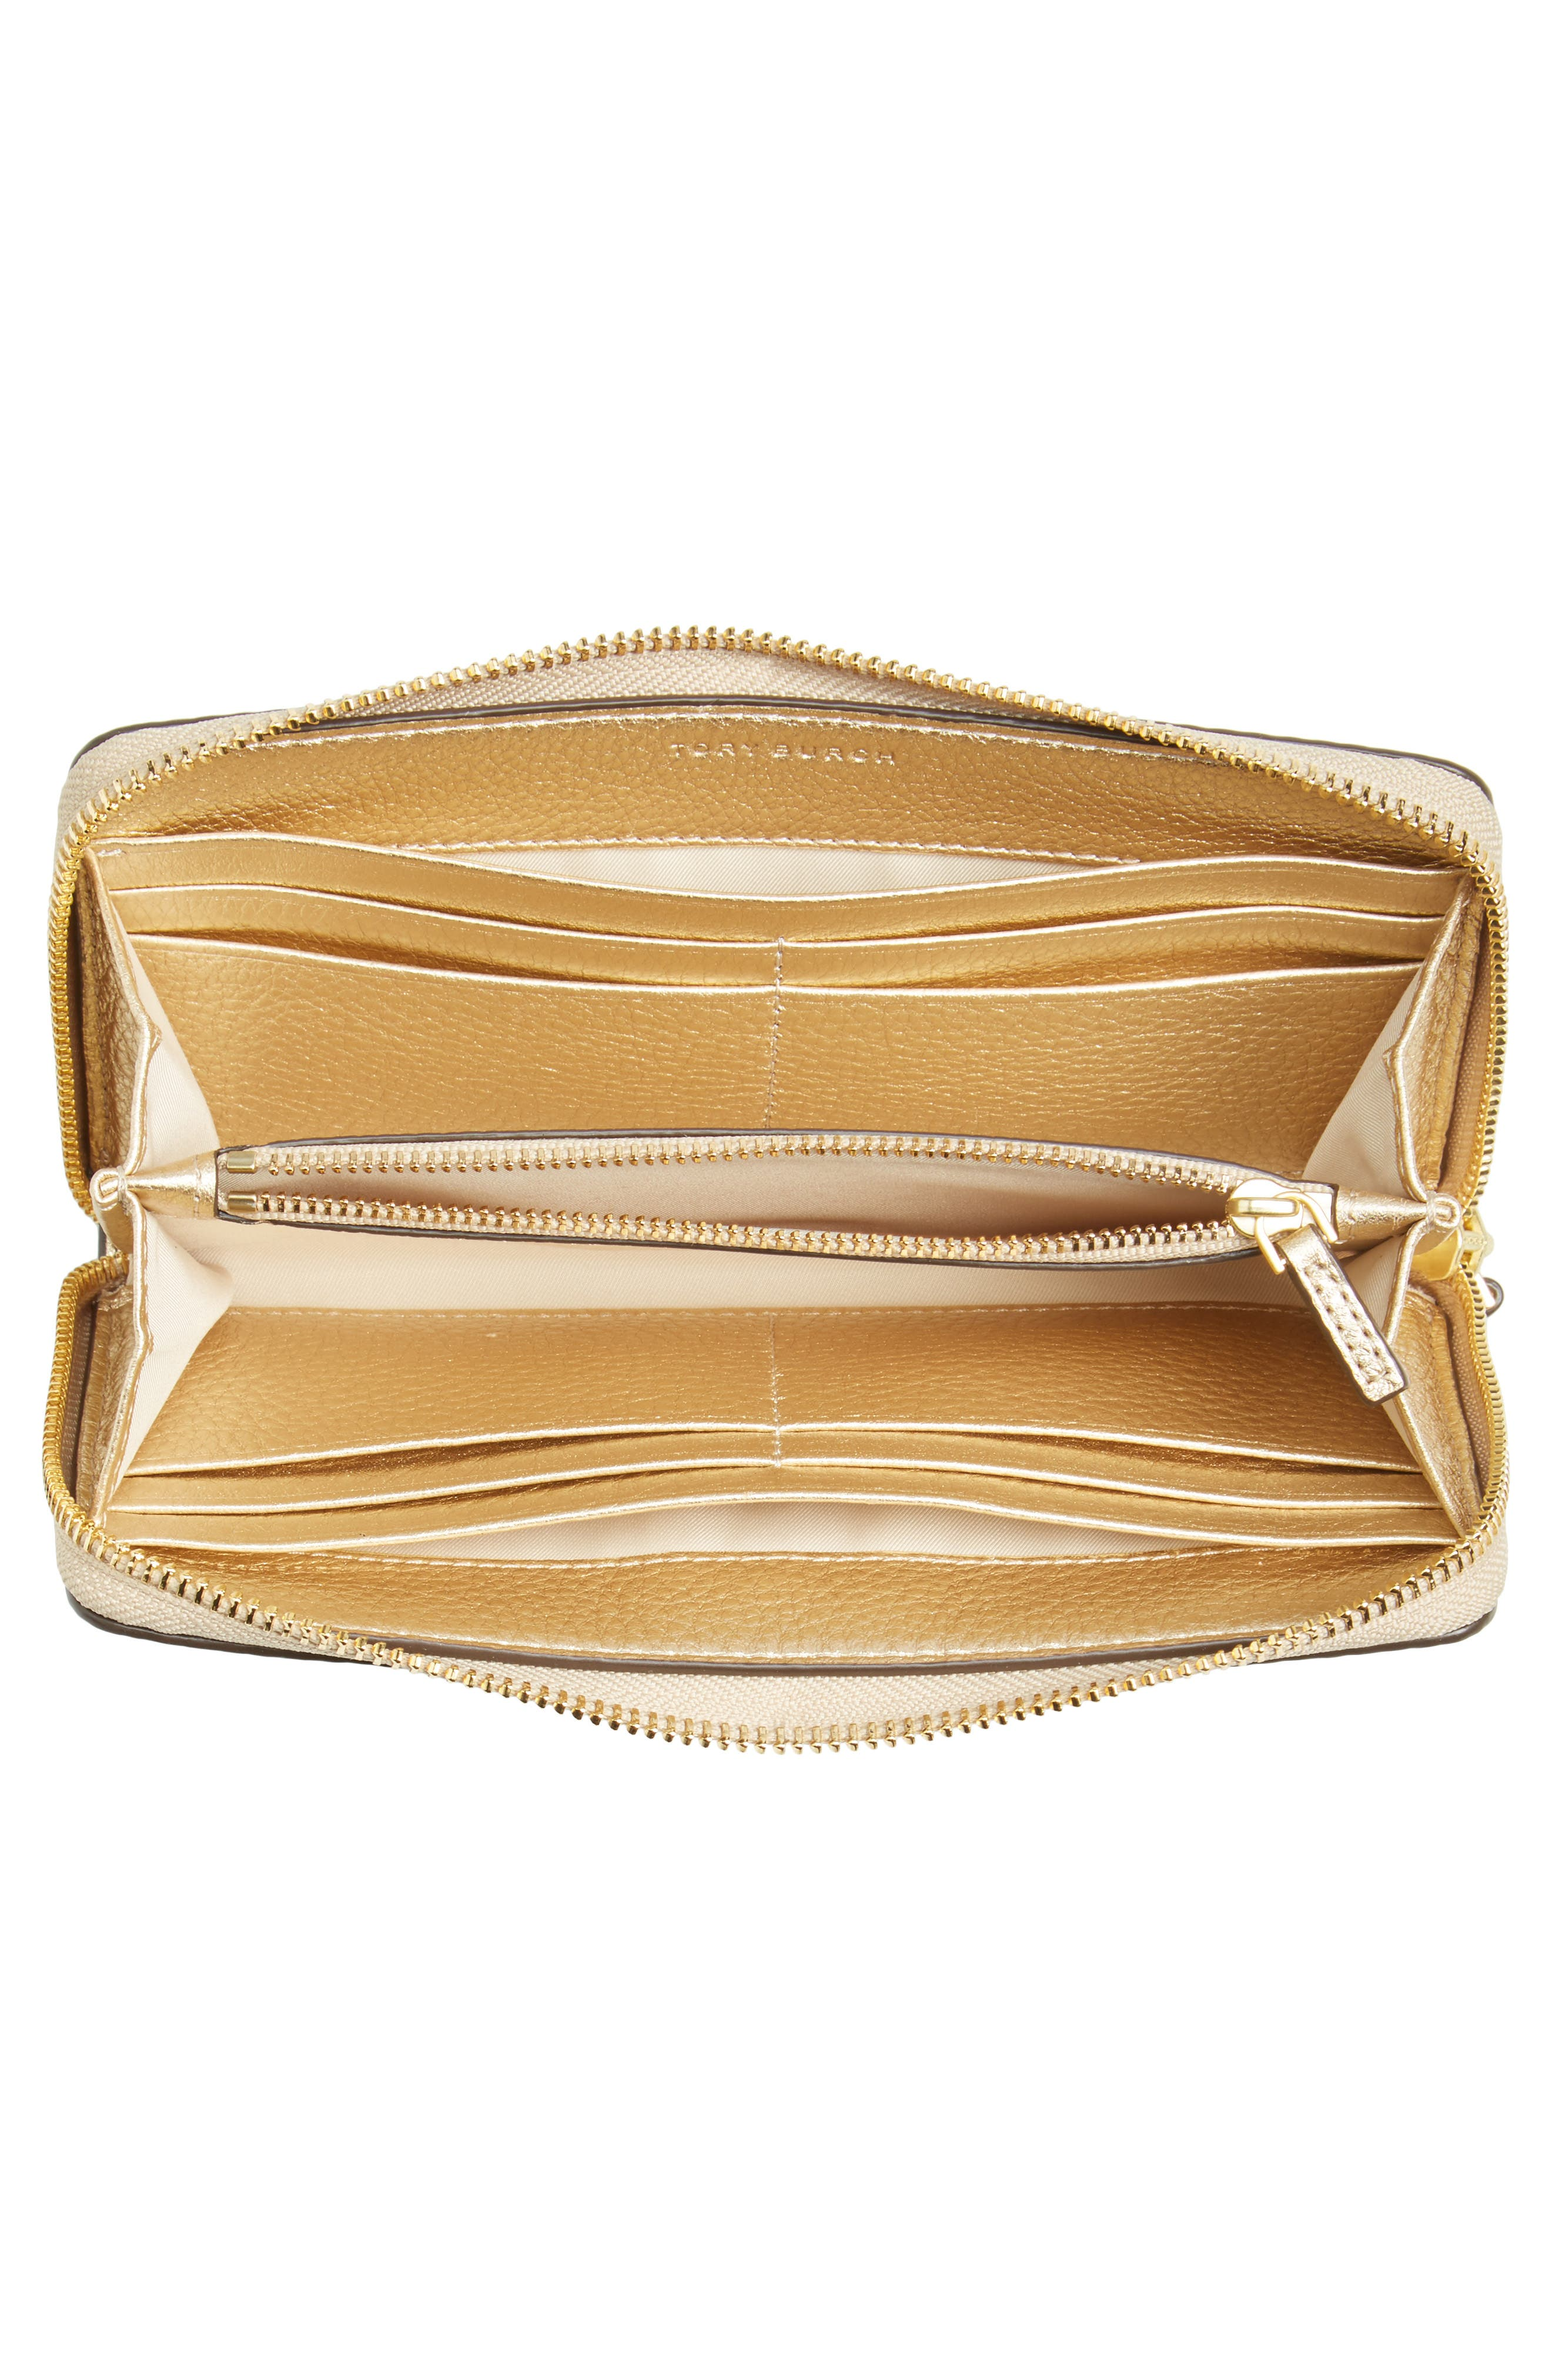 McGraw Leather Continental Wallet,                             Alternate thumbnail 3, color,                             Gold